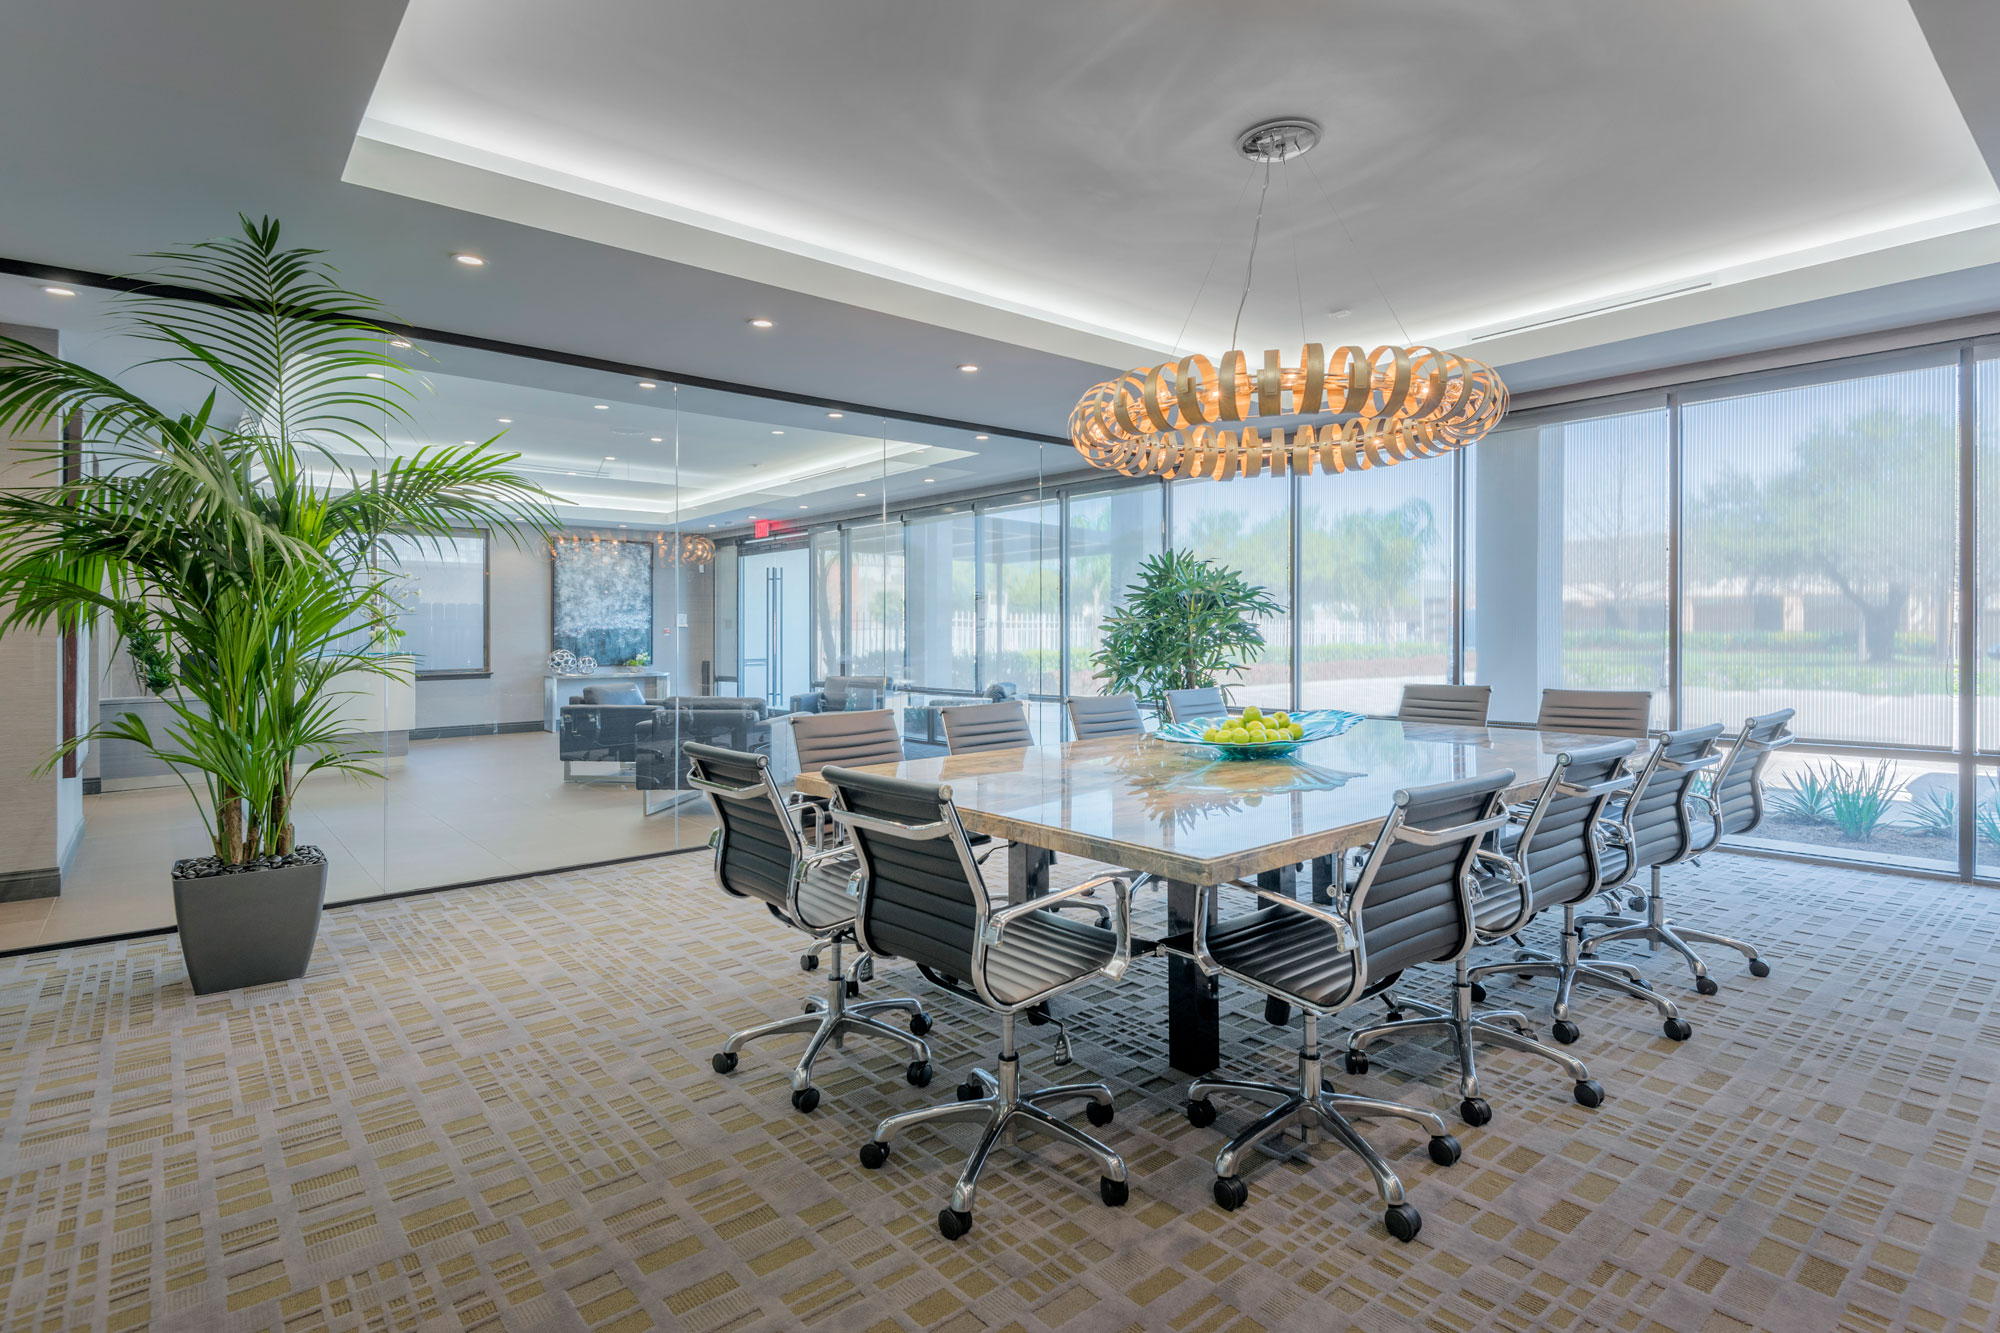 Wogan_Design_Interior_Design_Houston_Law_Office007